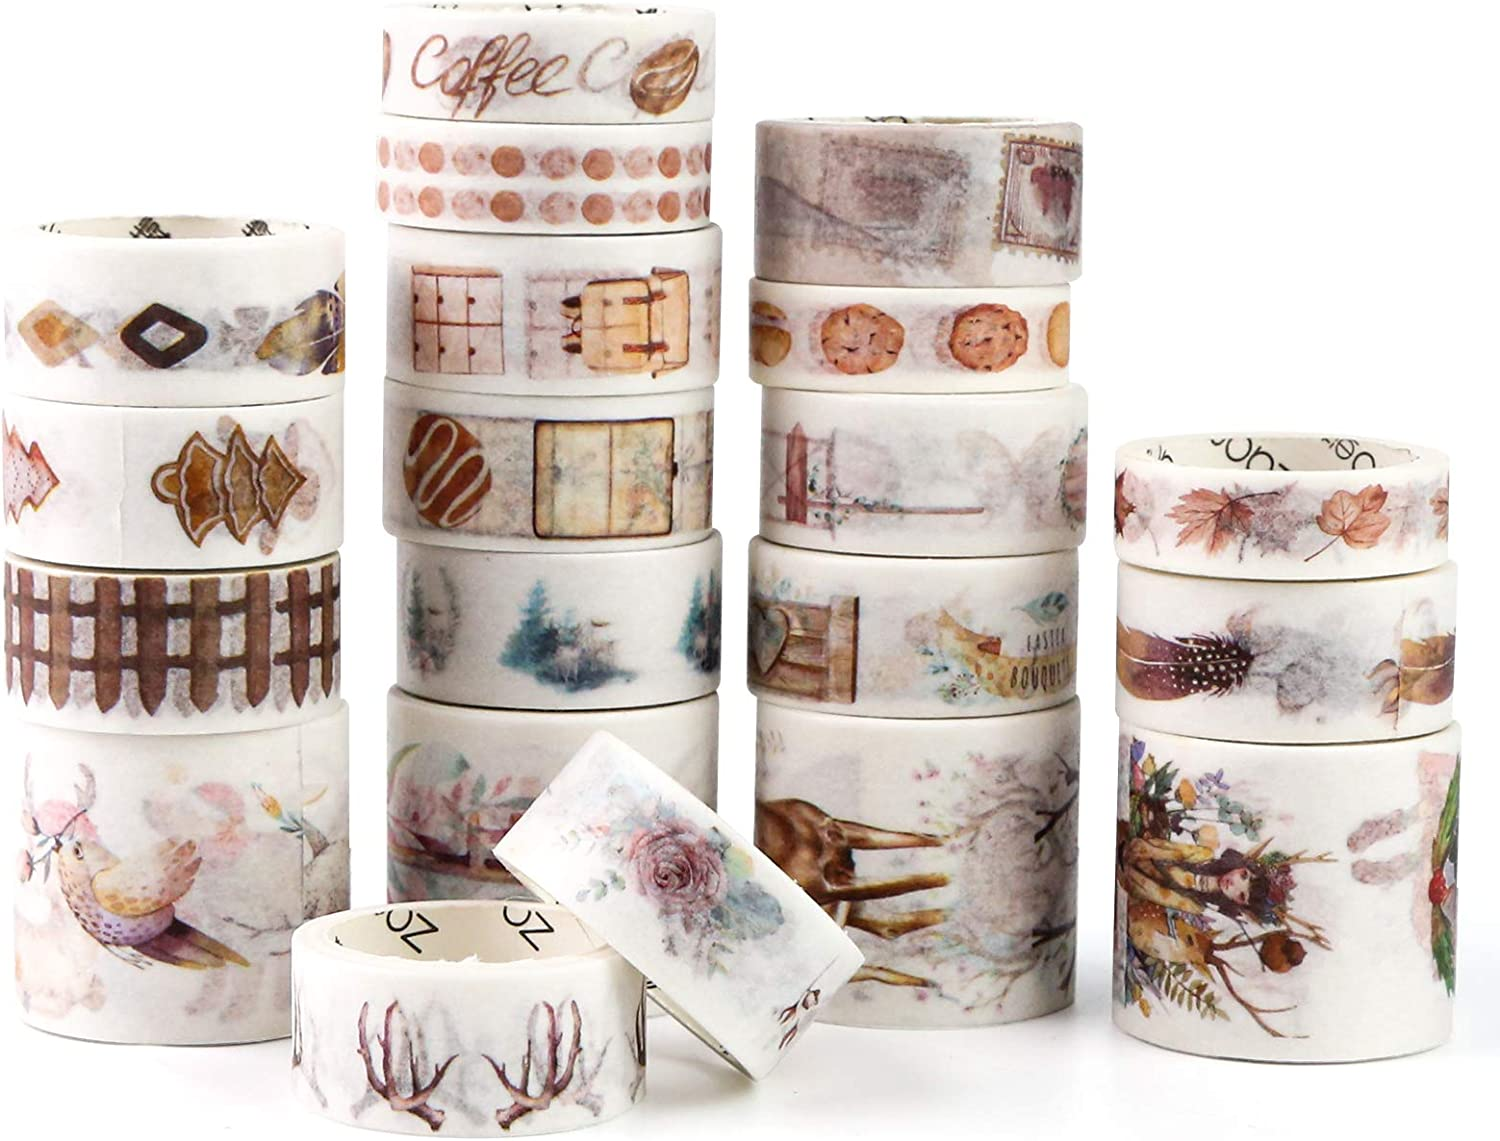 20 Rolls Decorative Tapes Scrapbook Tapes for DIY Crafts Gift Wrapping Festivals Party Decoration SallyFashion Washi Tape